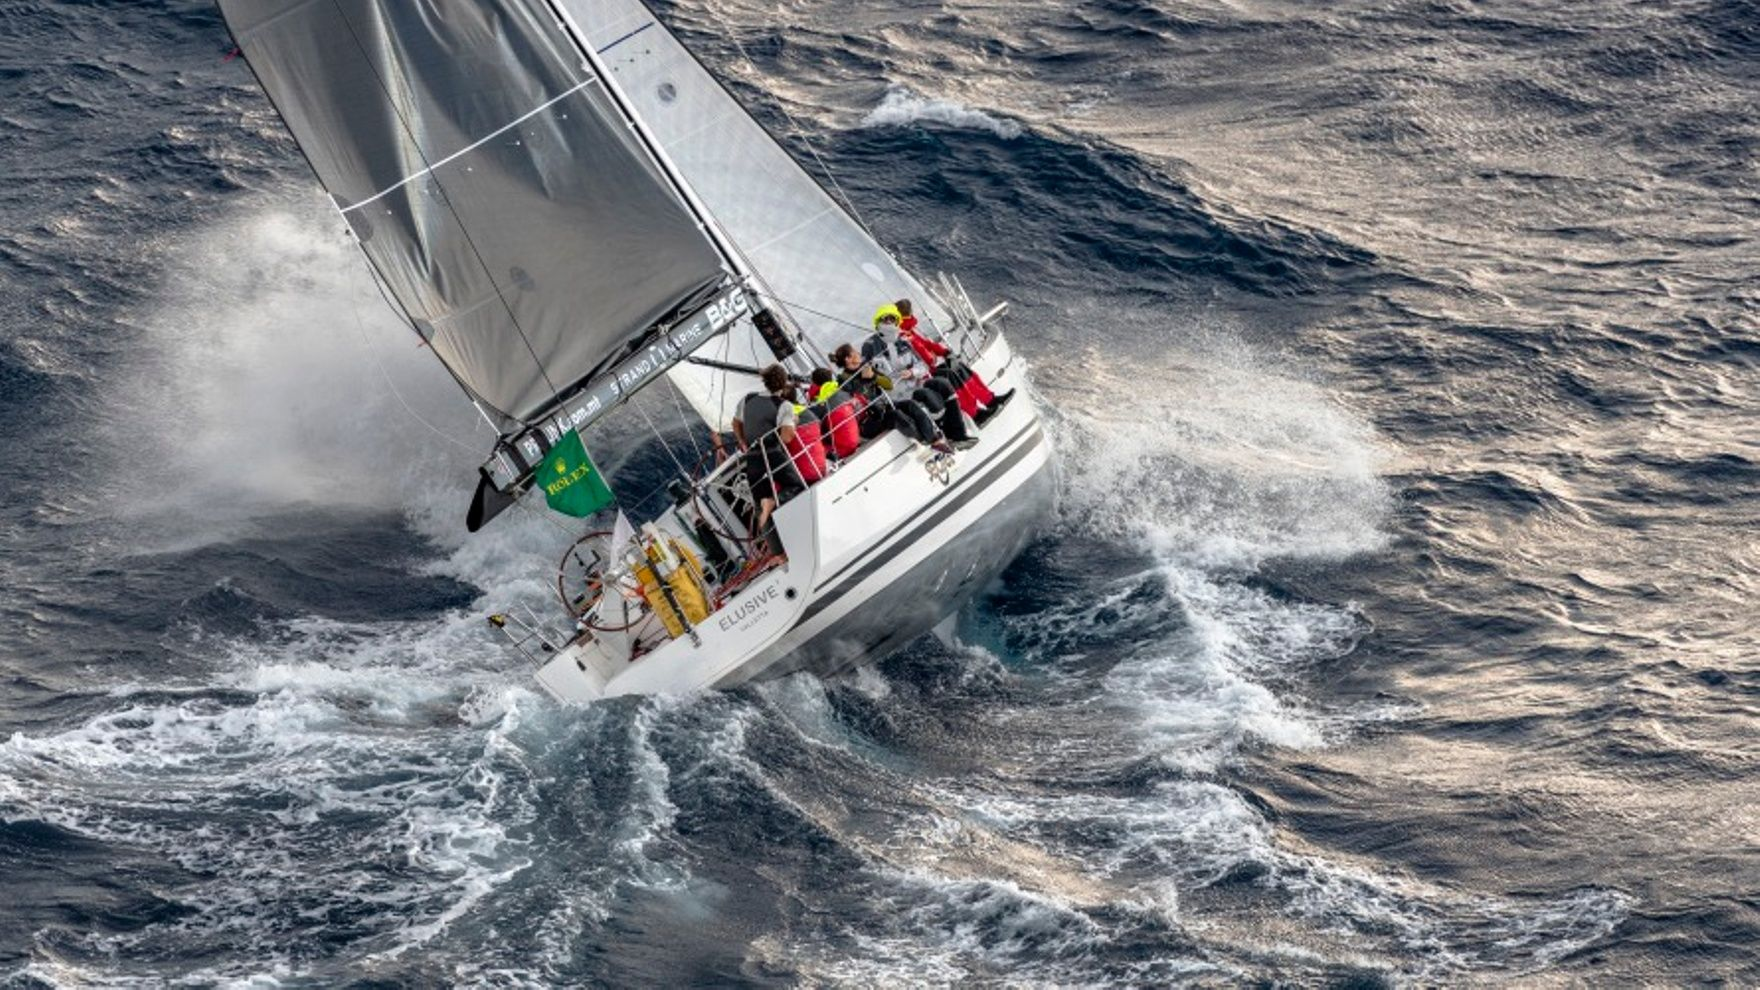 ROLEX MIDDLE SEA RACE 2019